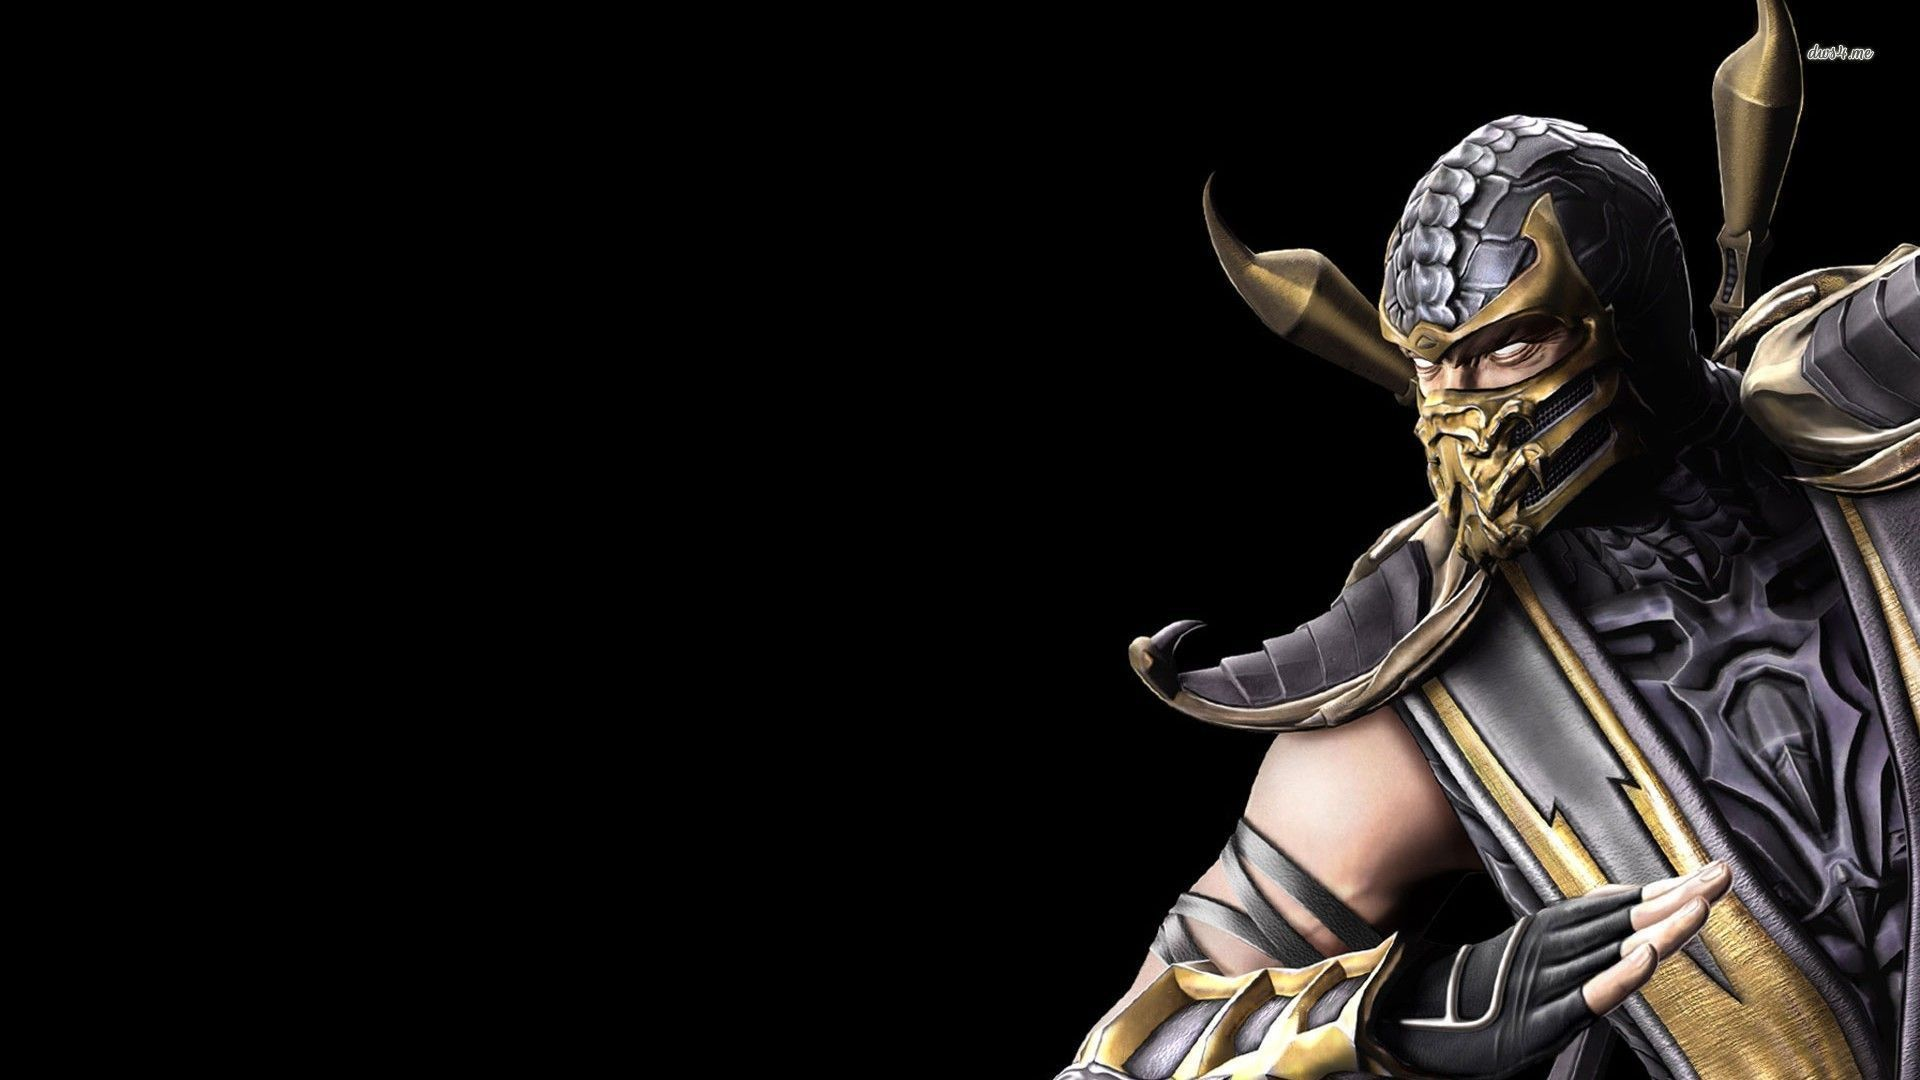 mortal kombat scorpion wallpapers hd | wallpapers for desktop